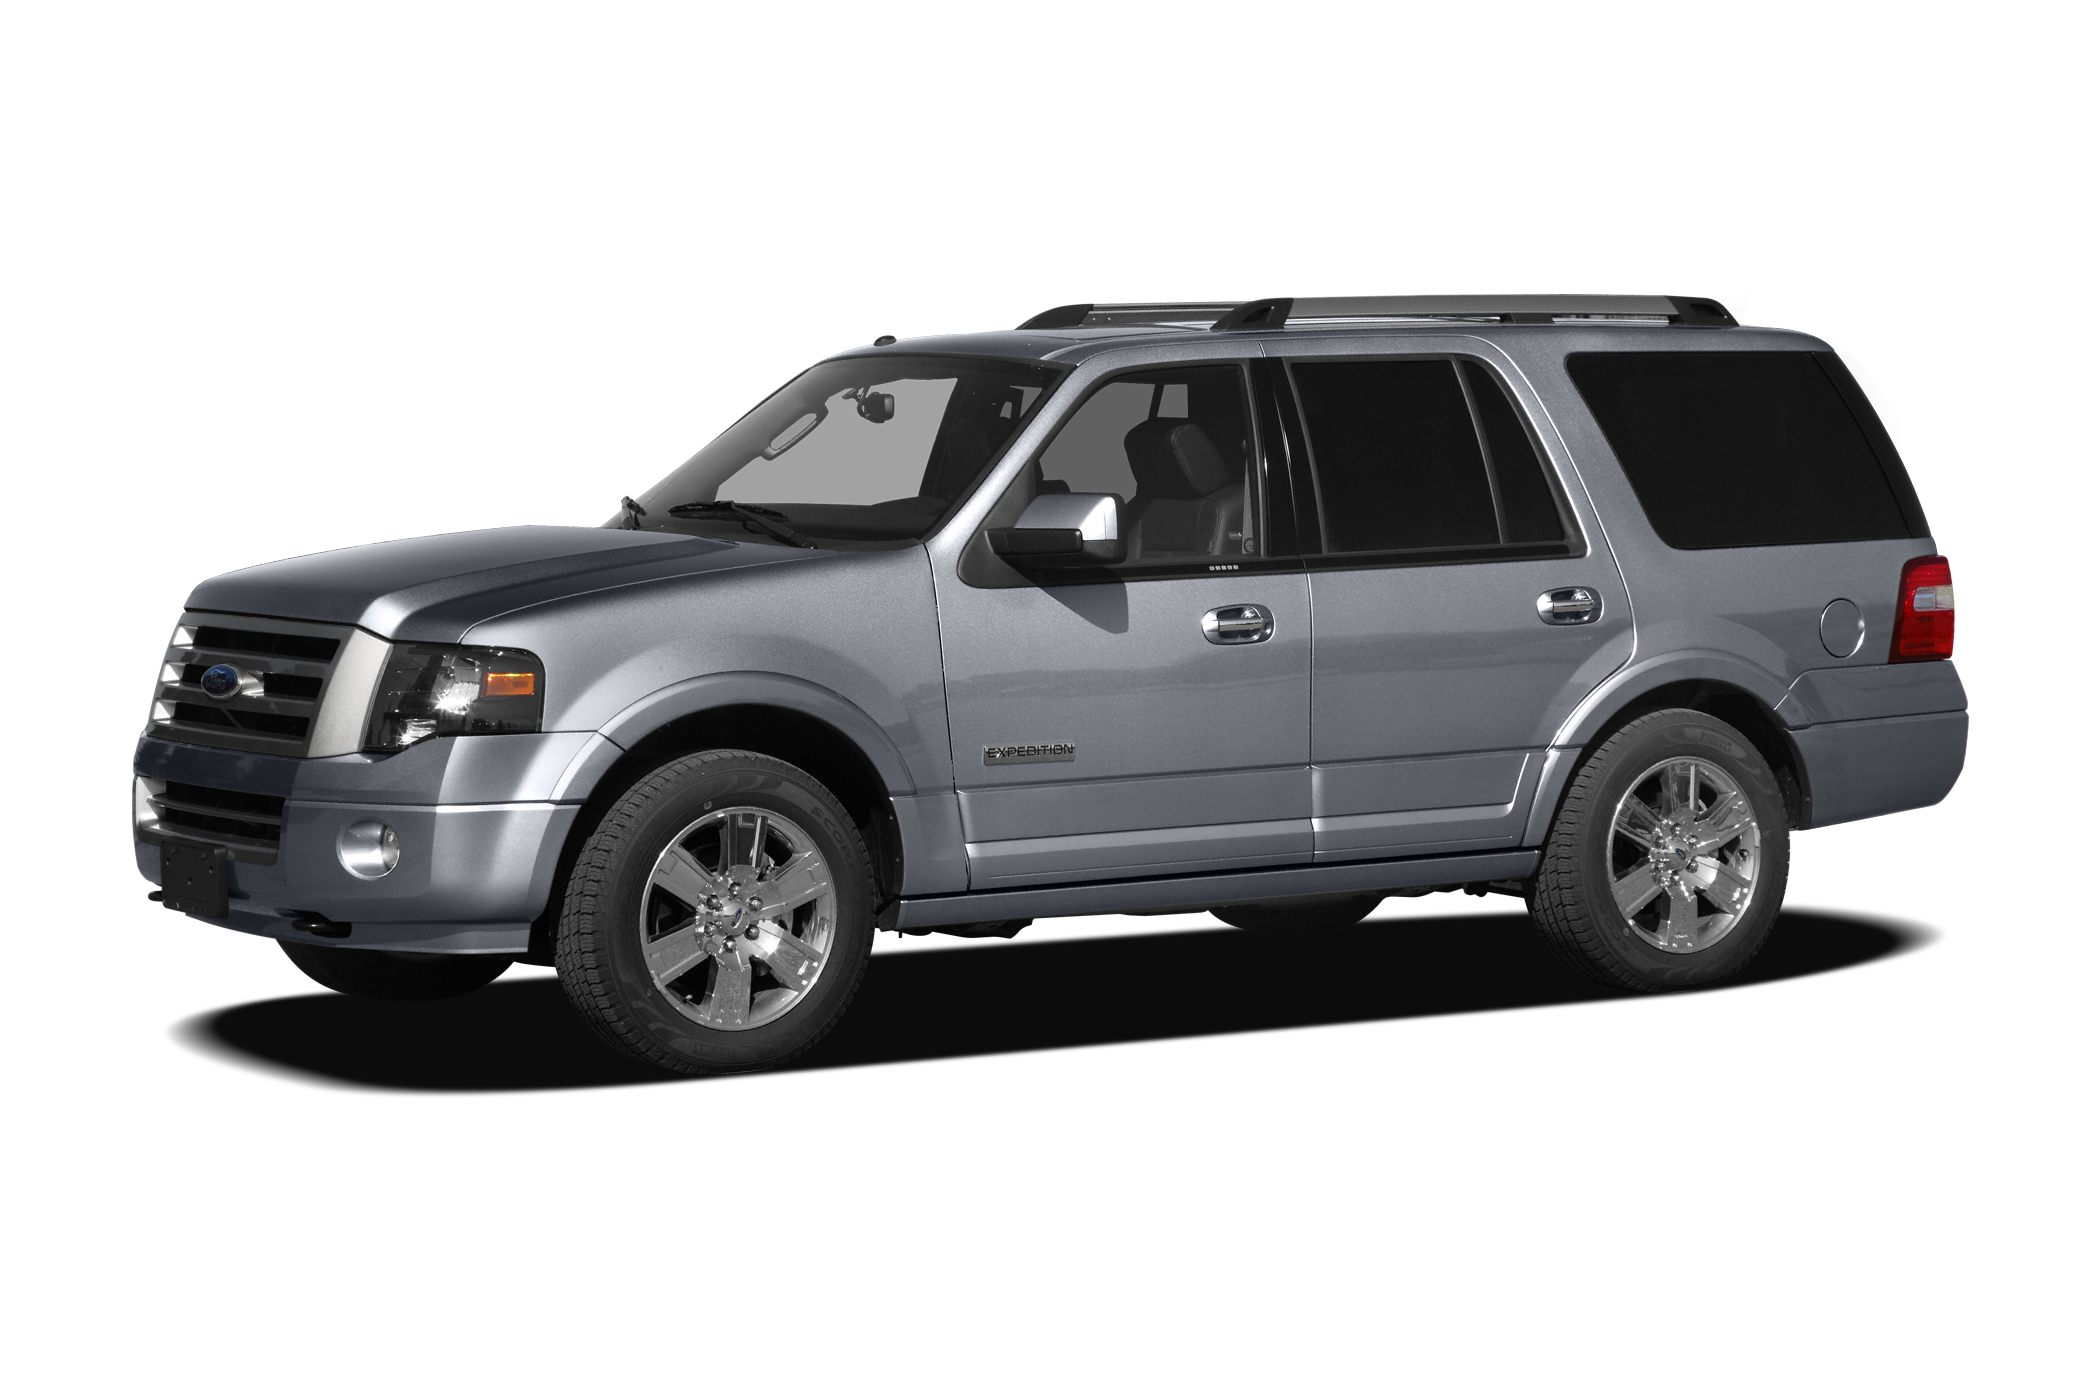 2010 Ford Expedition Eddie Bauer SUV for sale in Houston for $20,991 with 94,826 miles